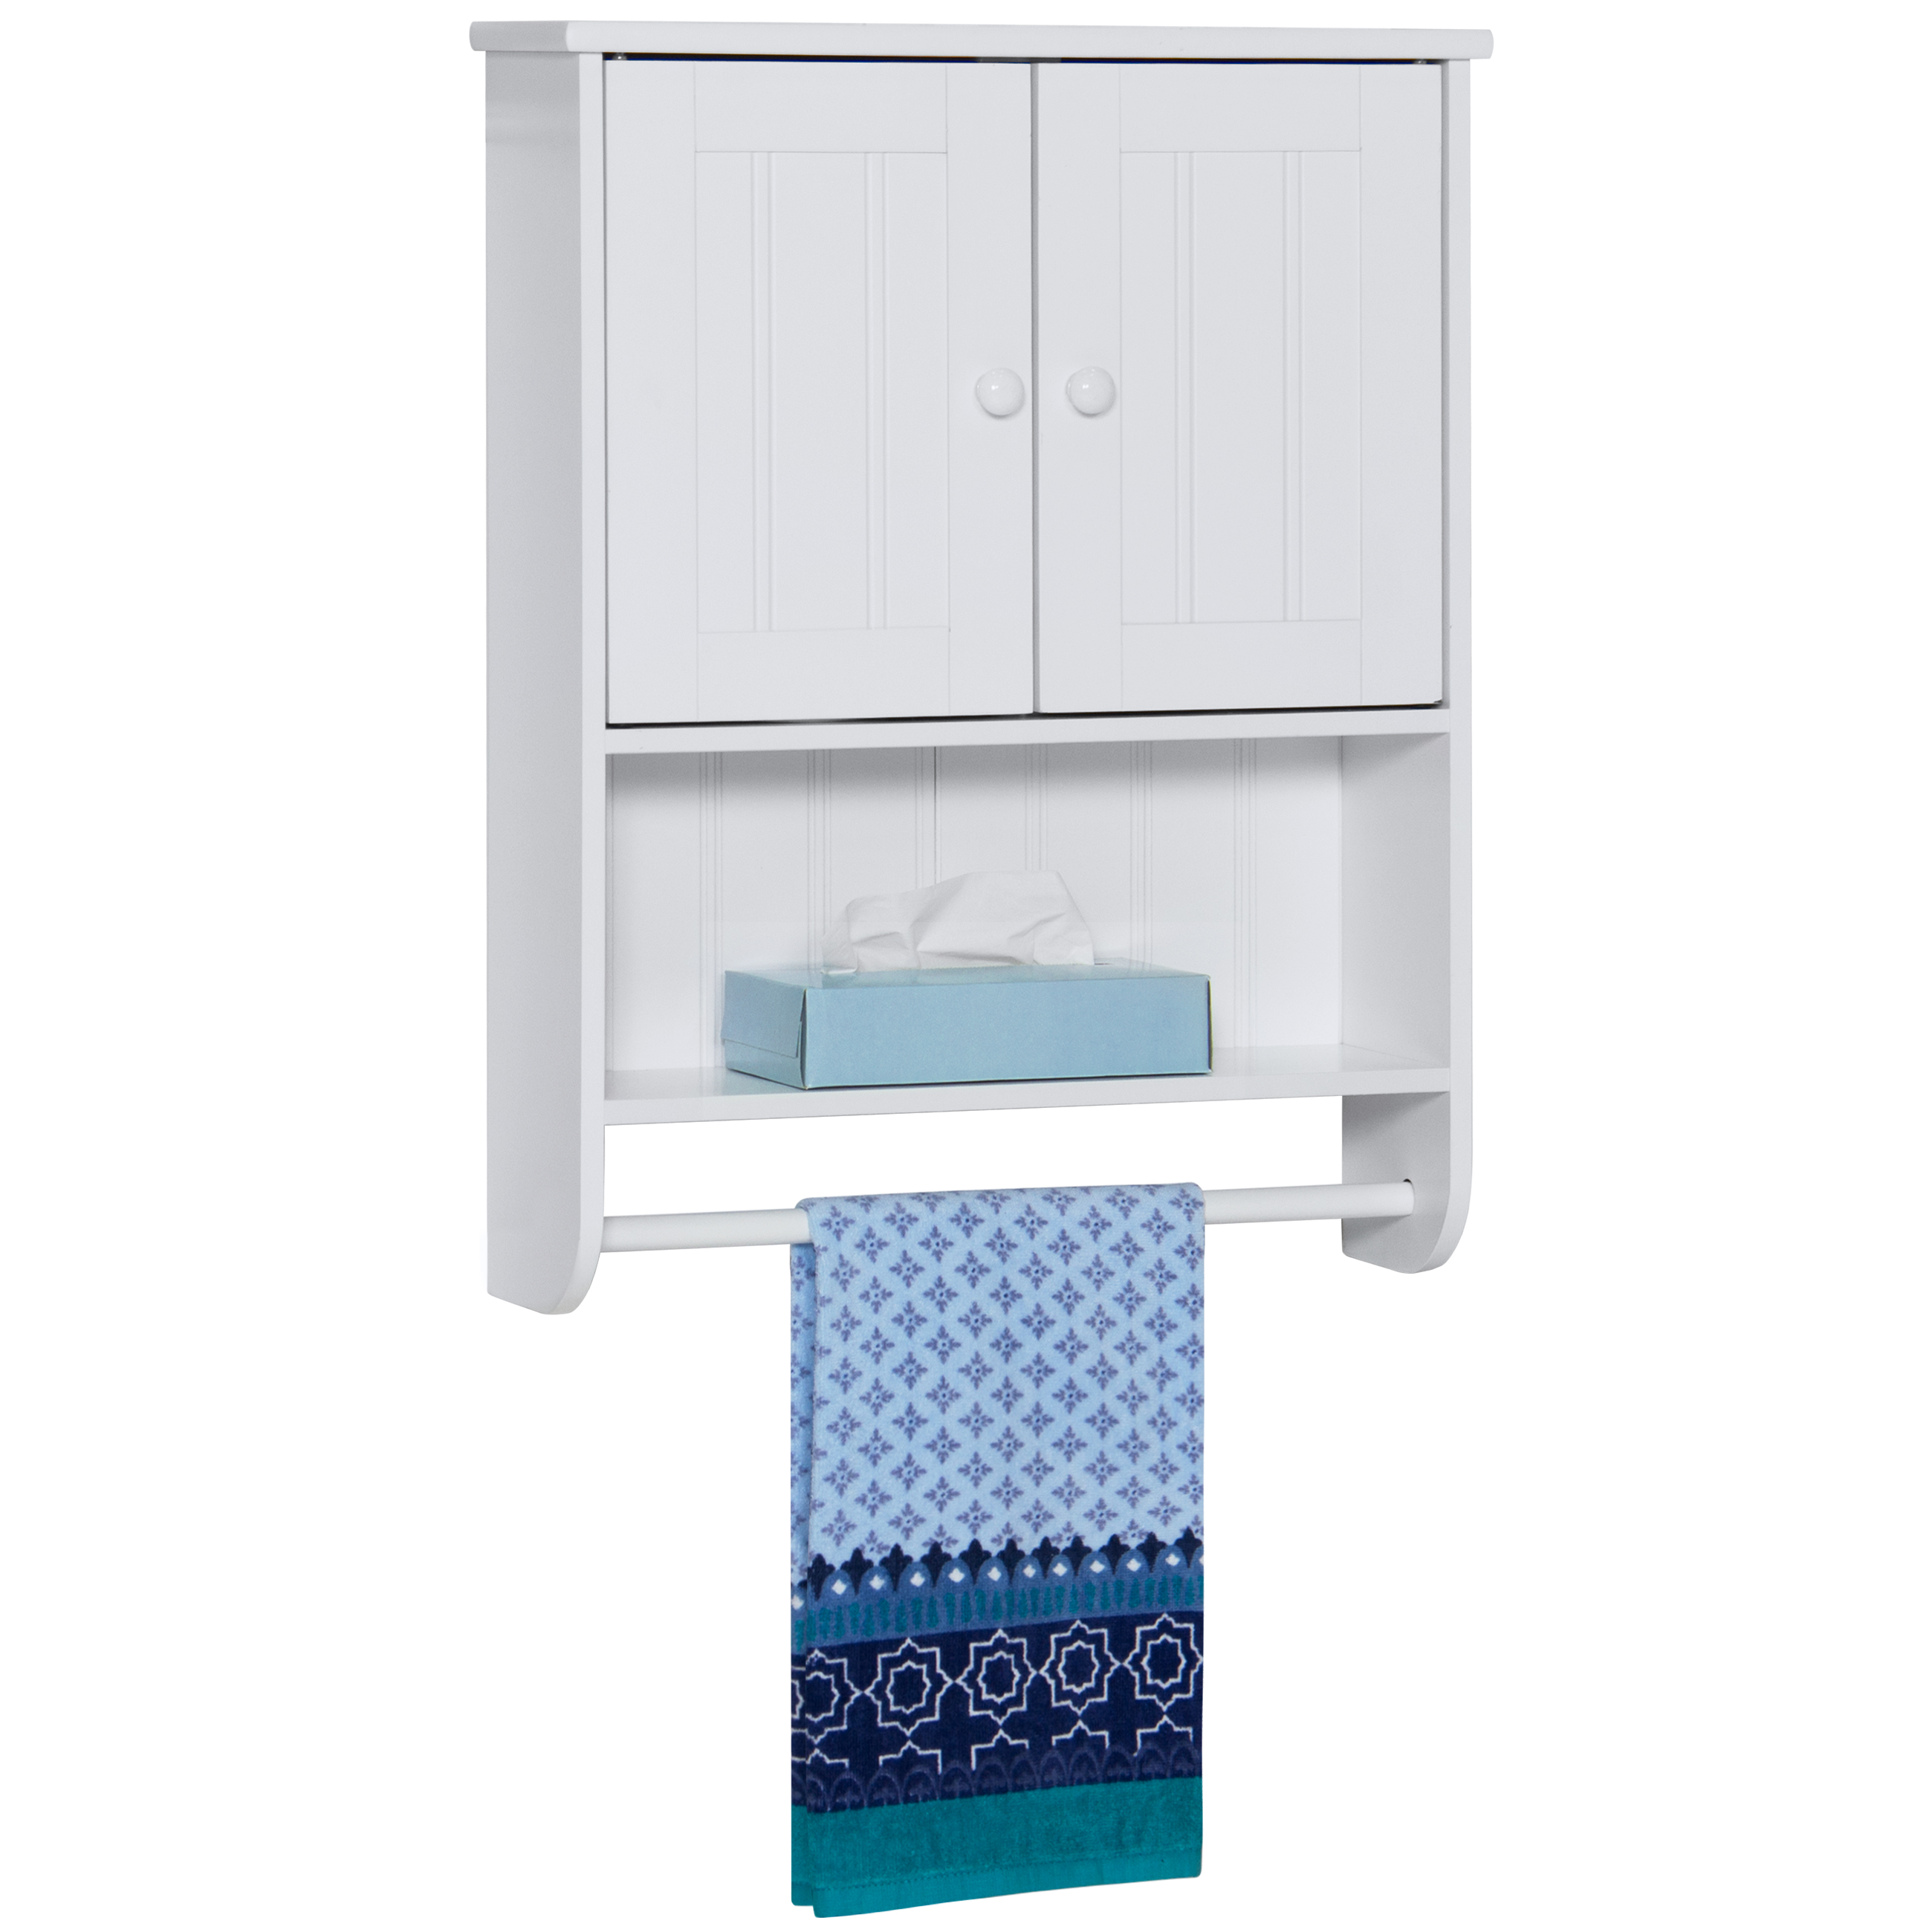 Best Choice Products Modern Contemporary Wood Bathroom Storage Organization Wall Cabinet w/ Open Cubby, Adjustable Shelf, Double Doors, Towel Bar, Wainscot Paneling - White